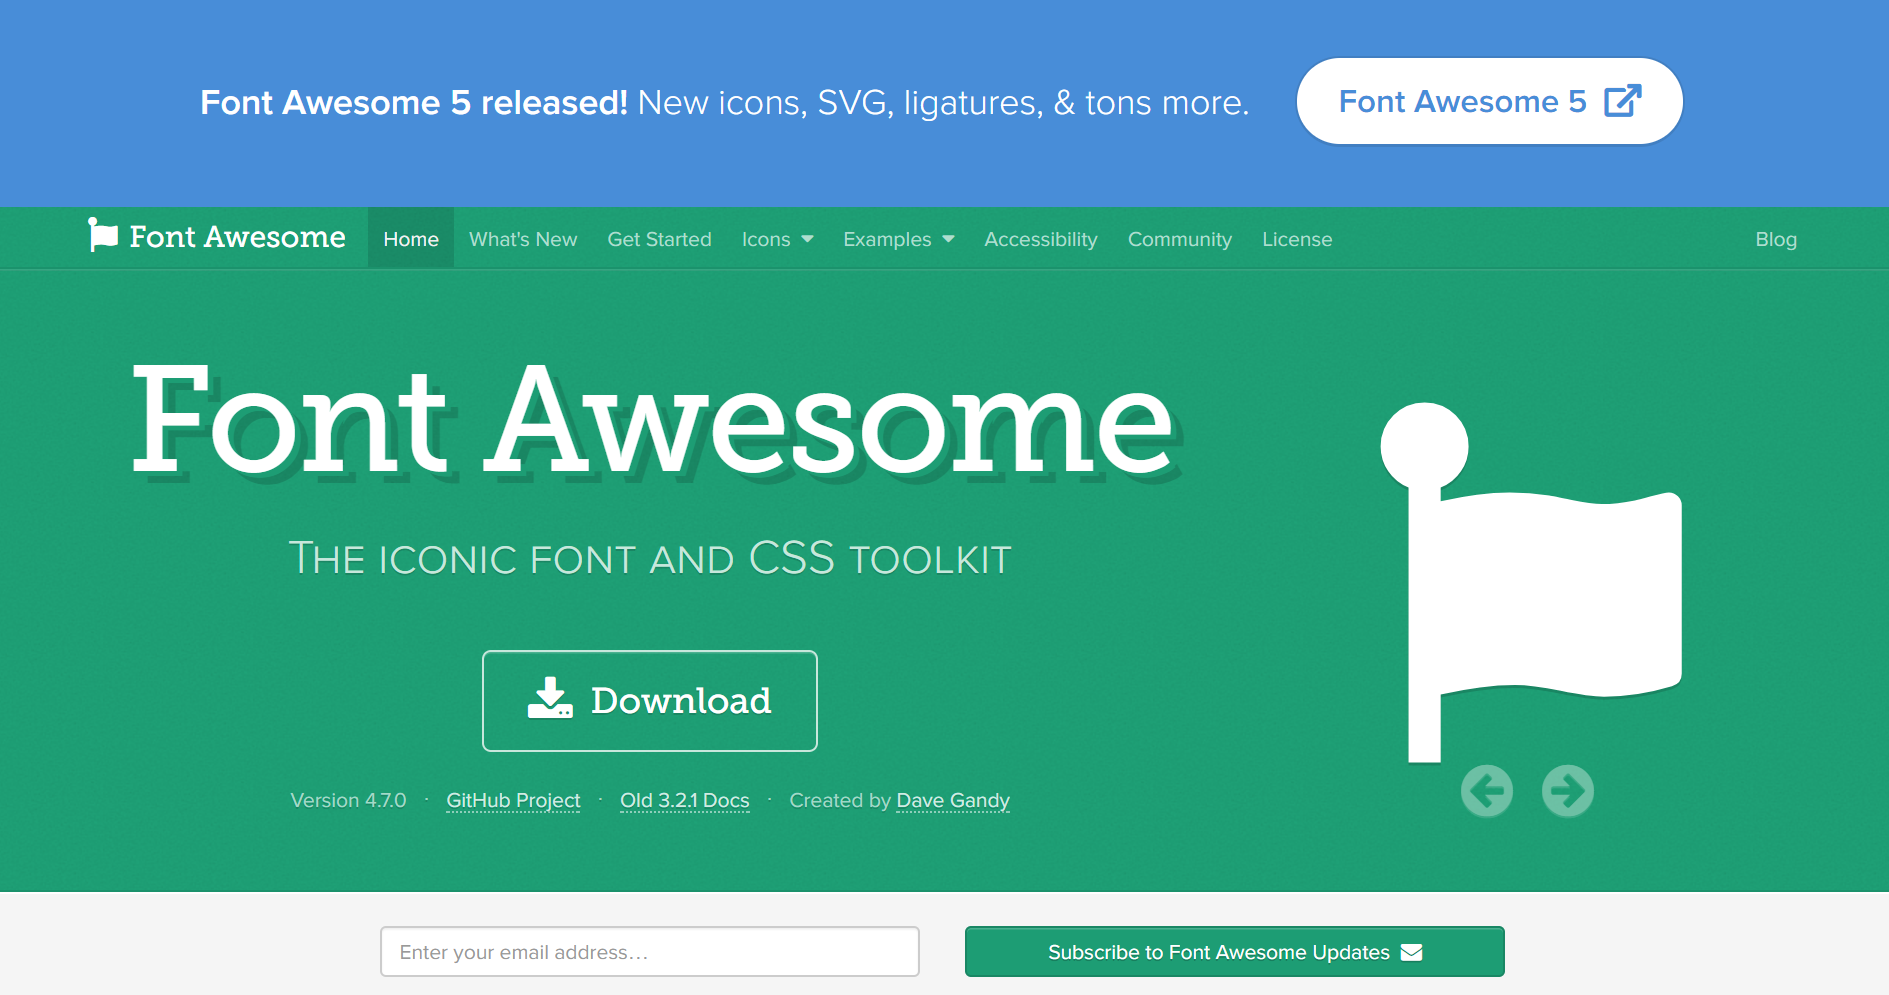 Font Awesome has changed the way that I build websites